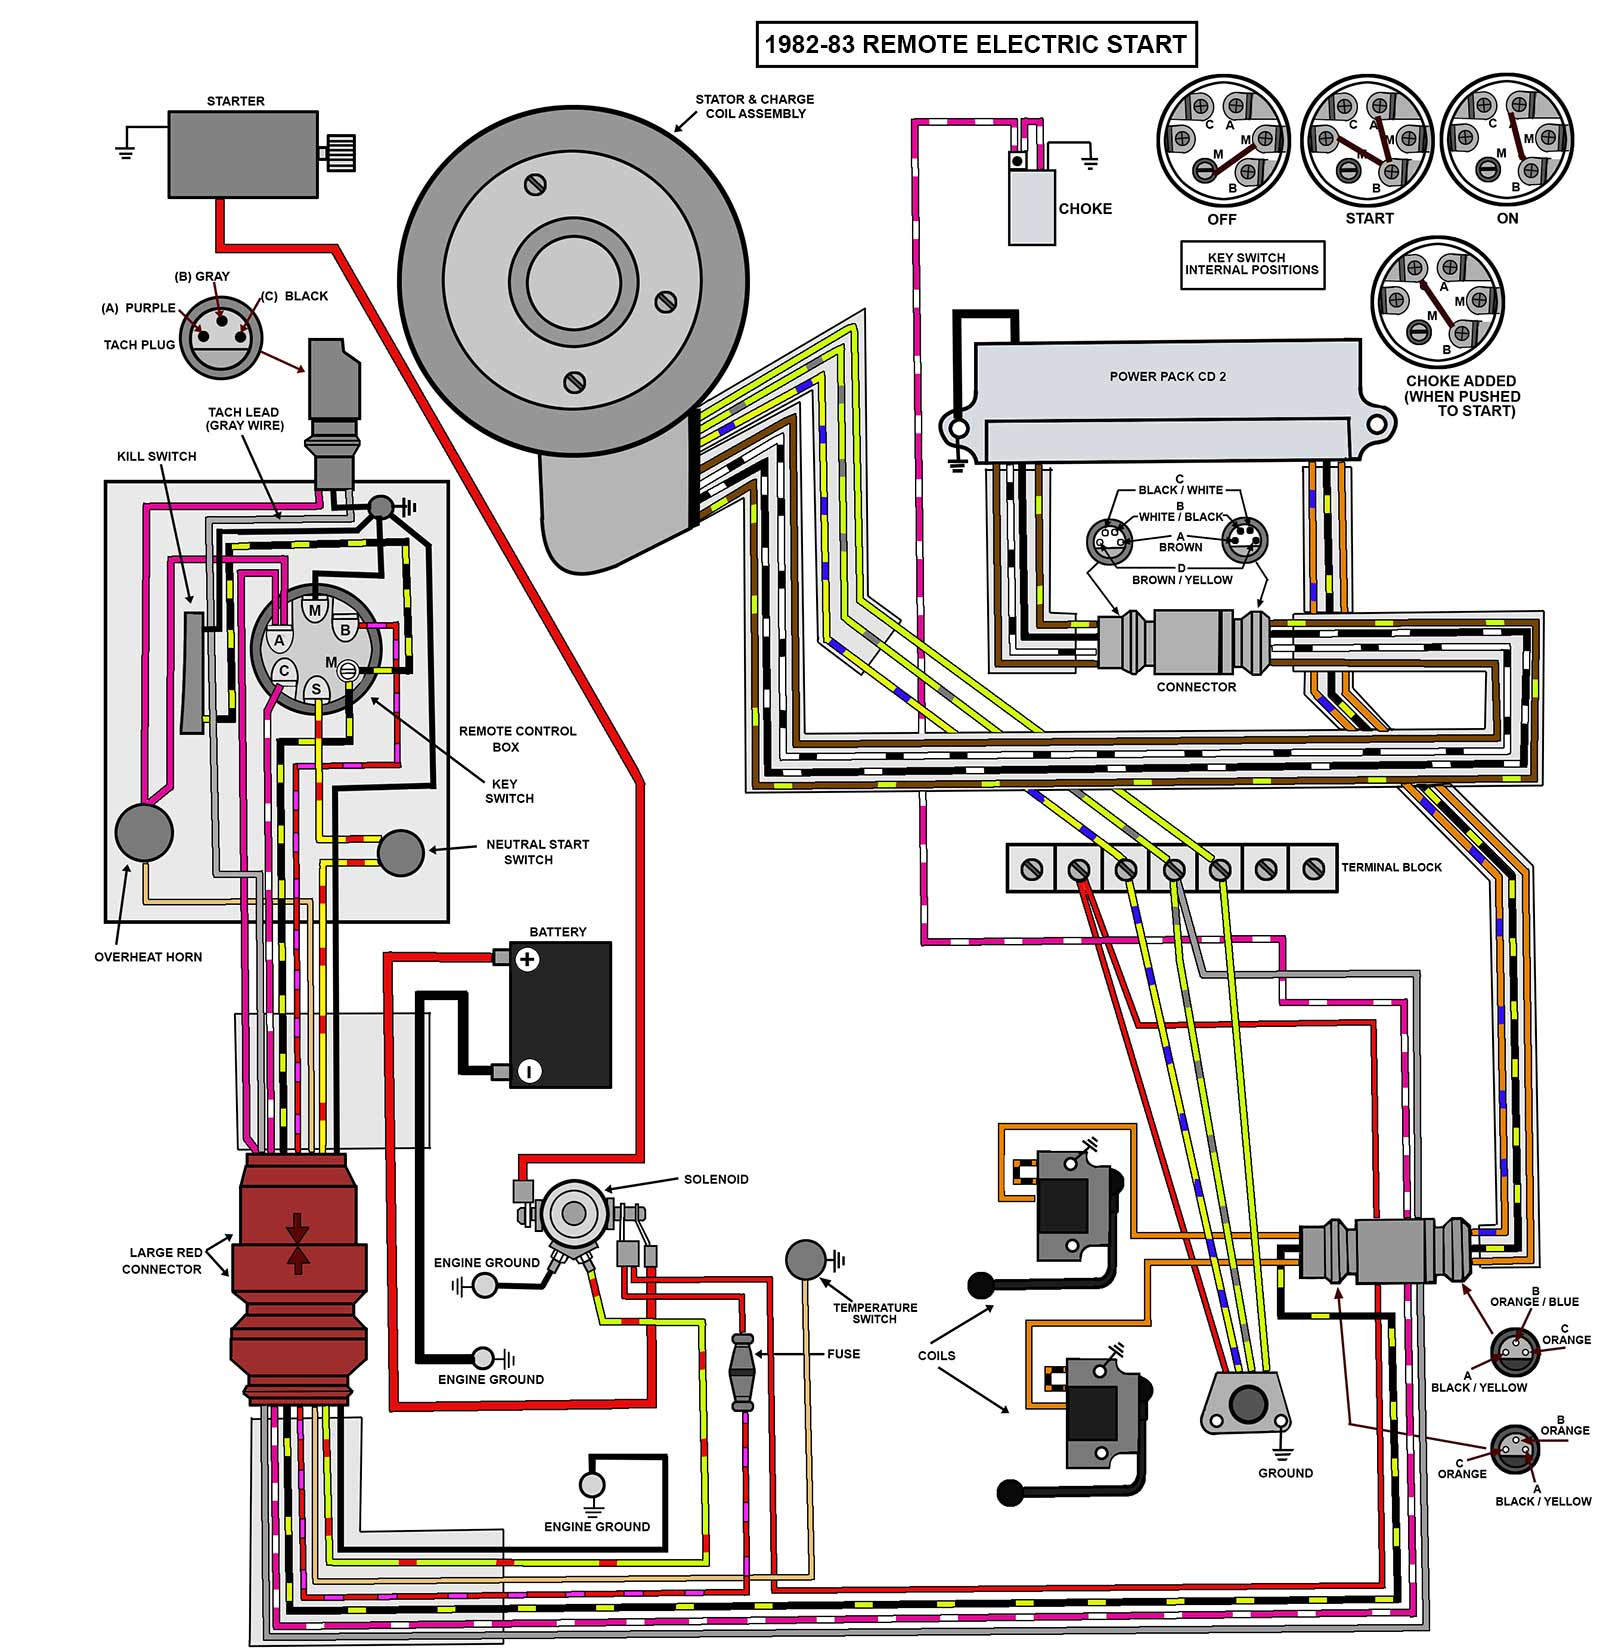 25_35_82 83_elec remote mastertech marine evinrude johnson outboard wiring diagrams 40 hp mercury outboard wiring diagram at suagrazia.org